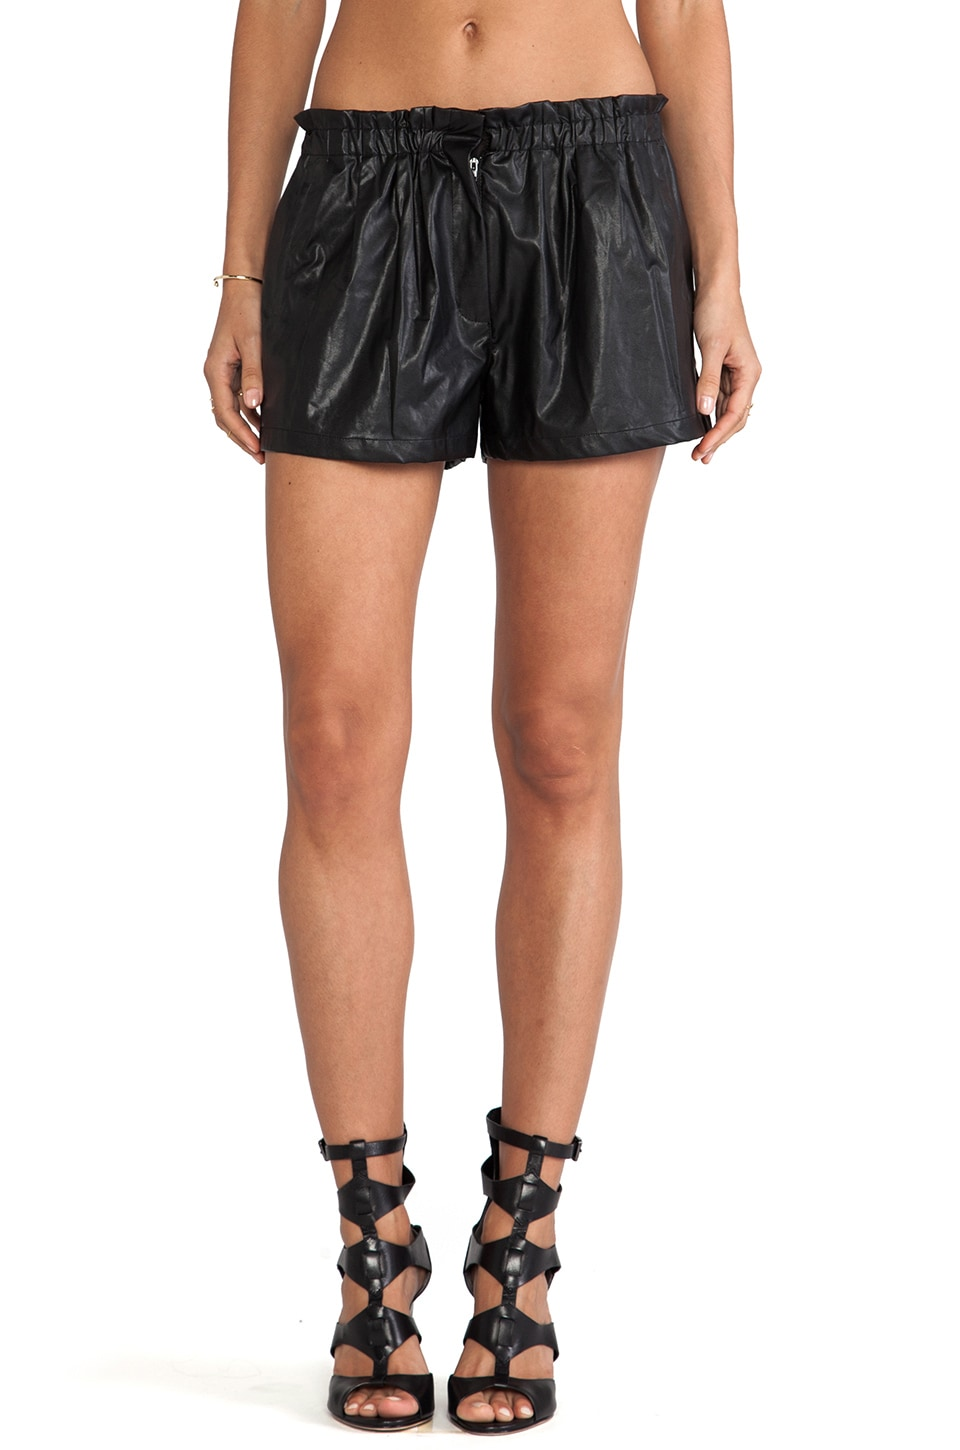 bless'ed are the meek Elixir Short in Black